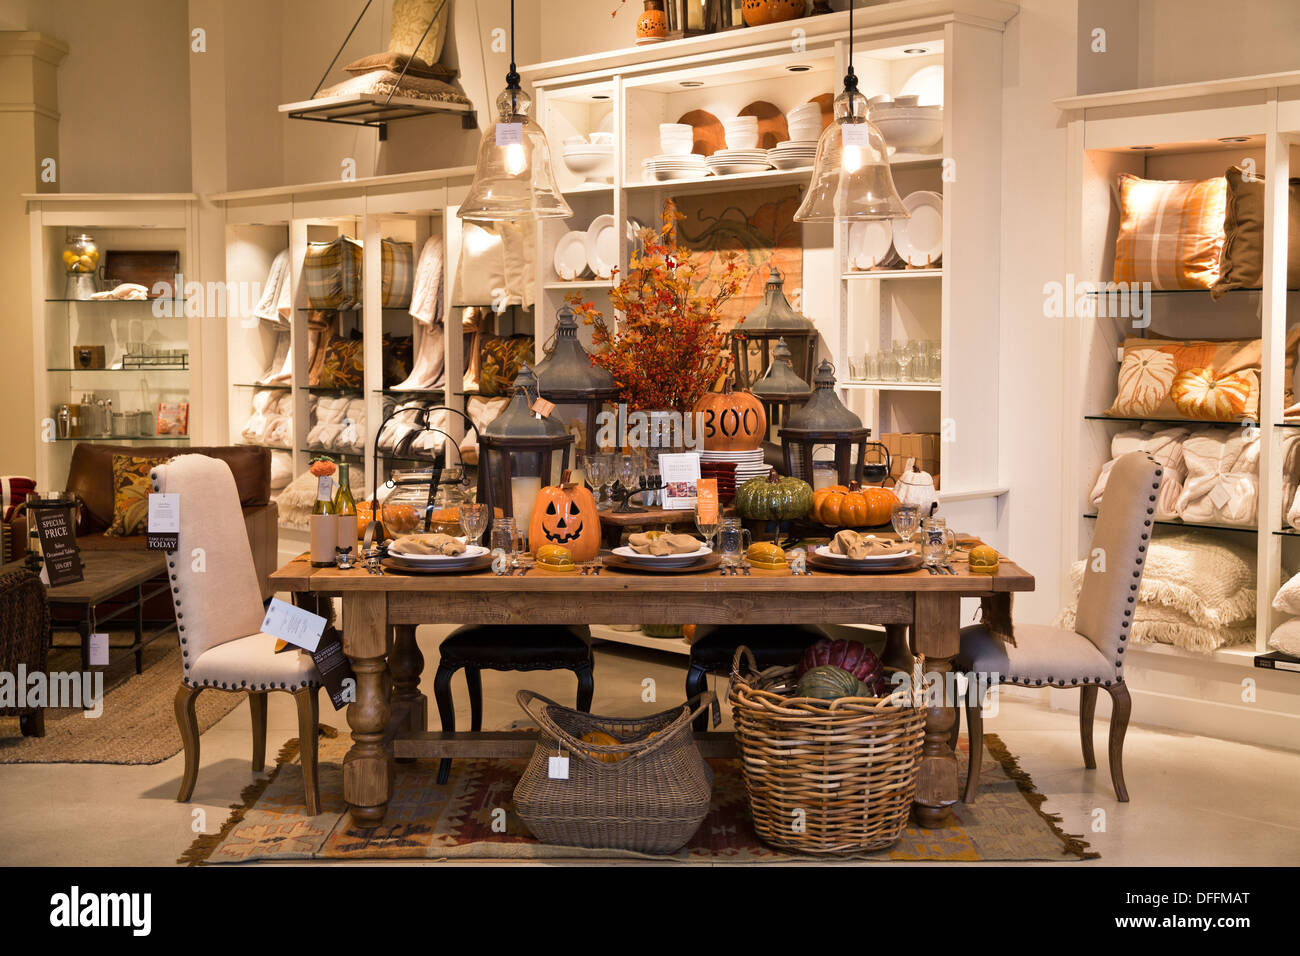 Pottery Barn Stock Photos & Pottery Barn Stock Images - Alamy